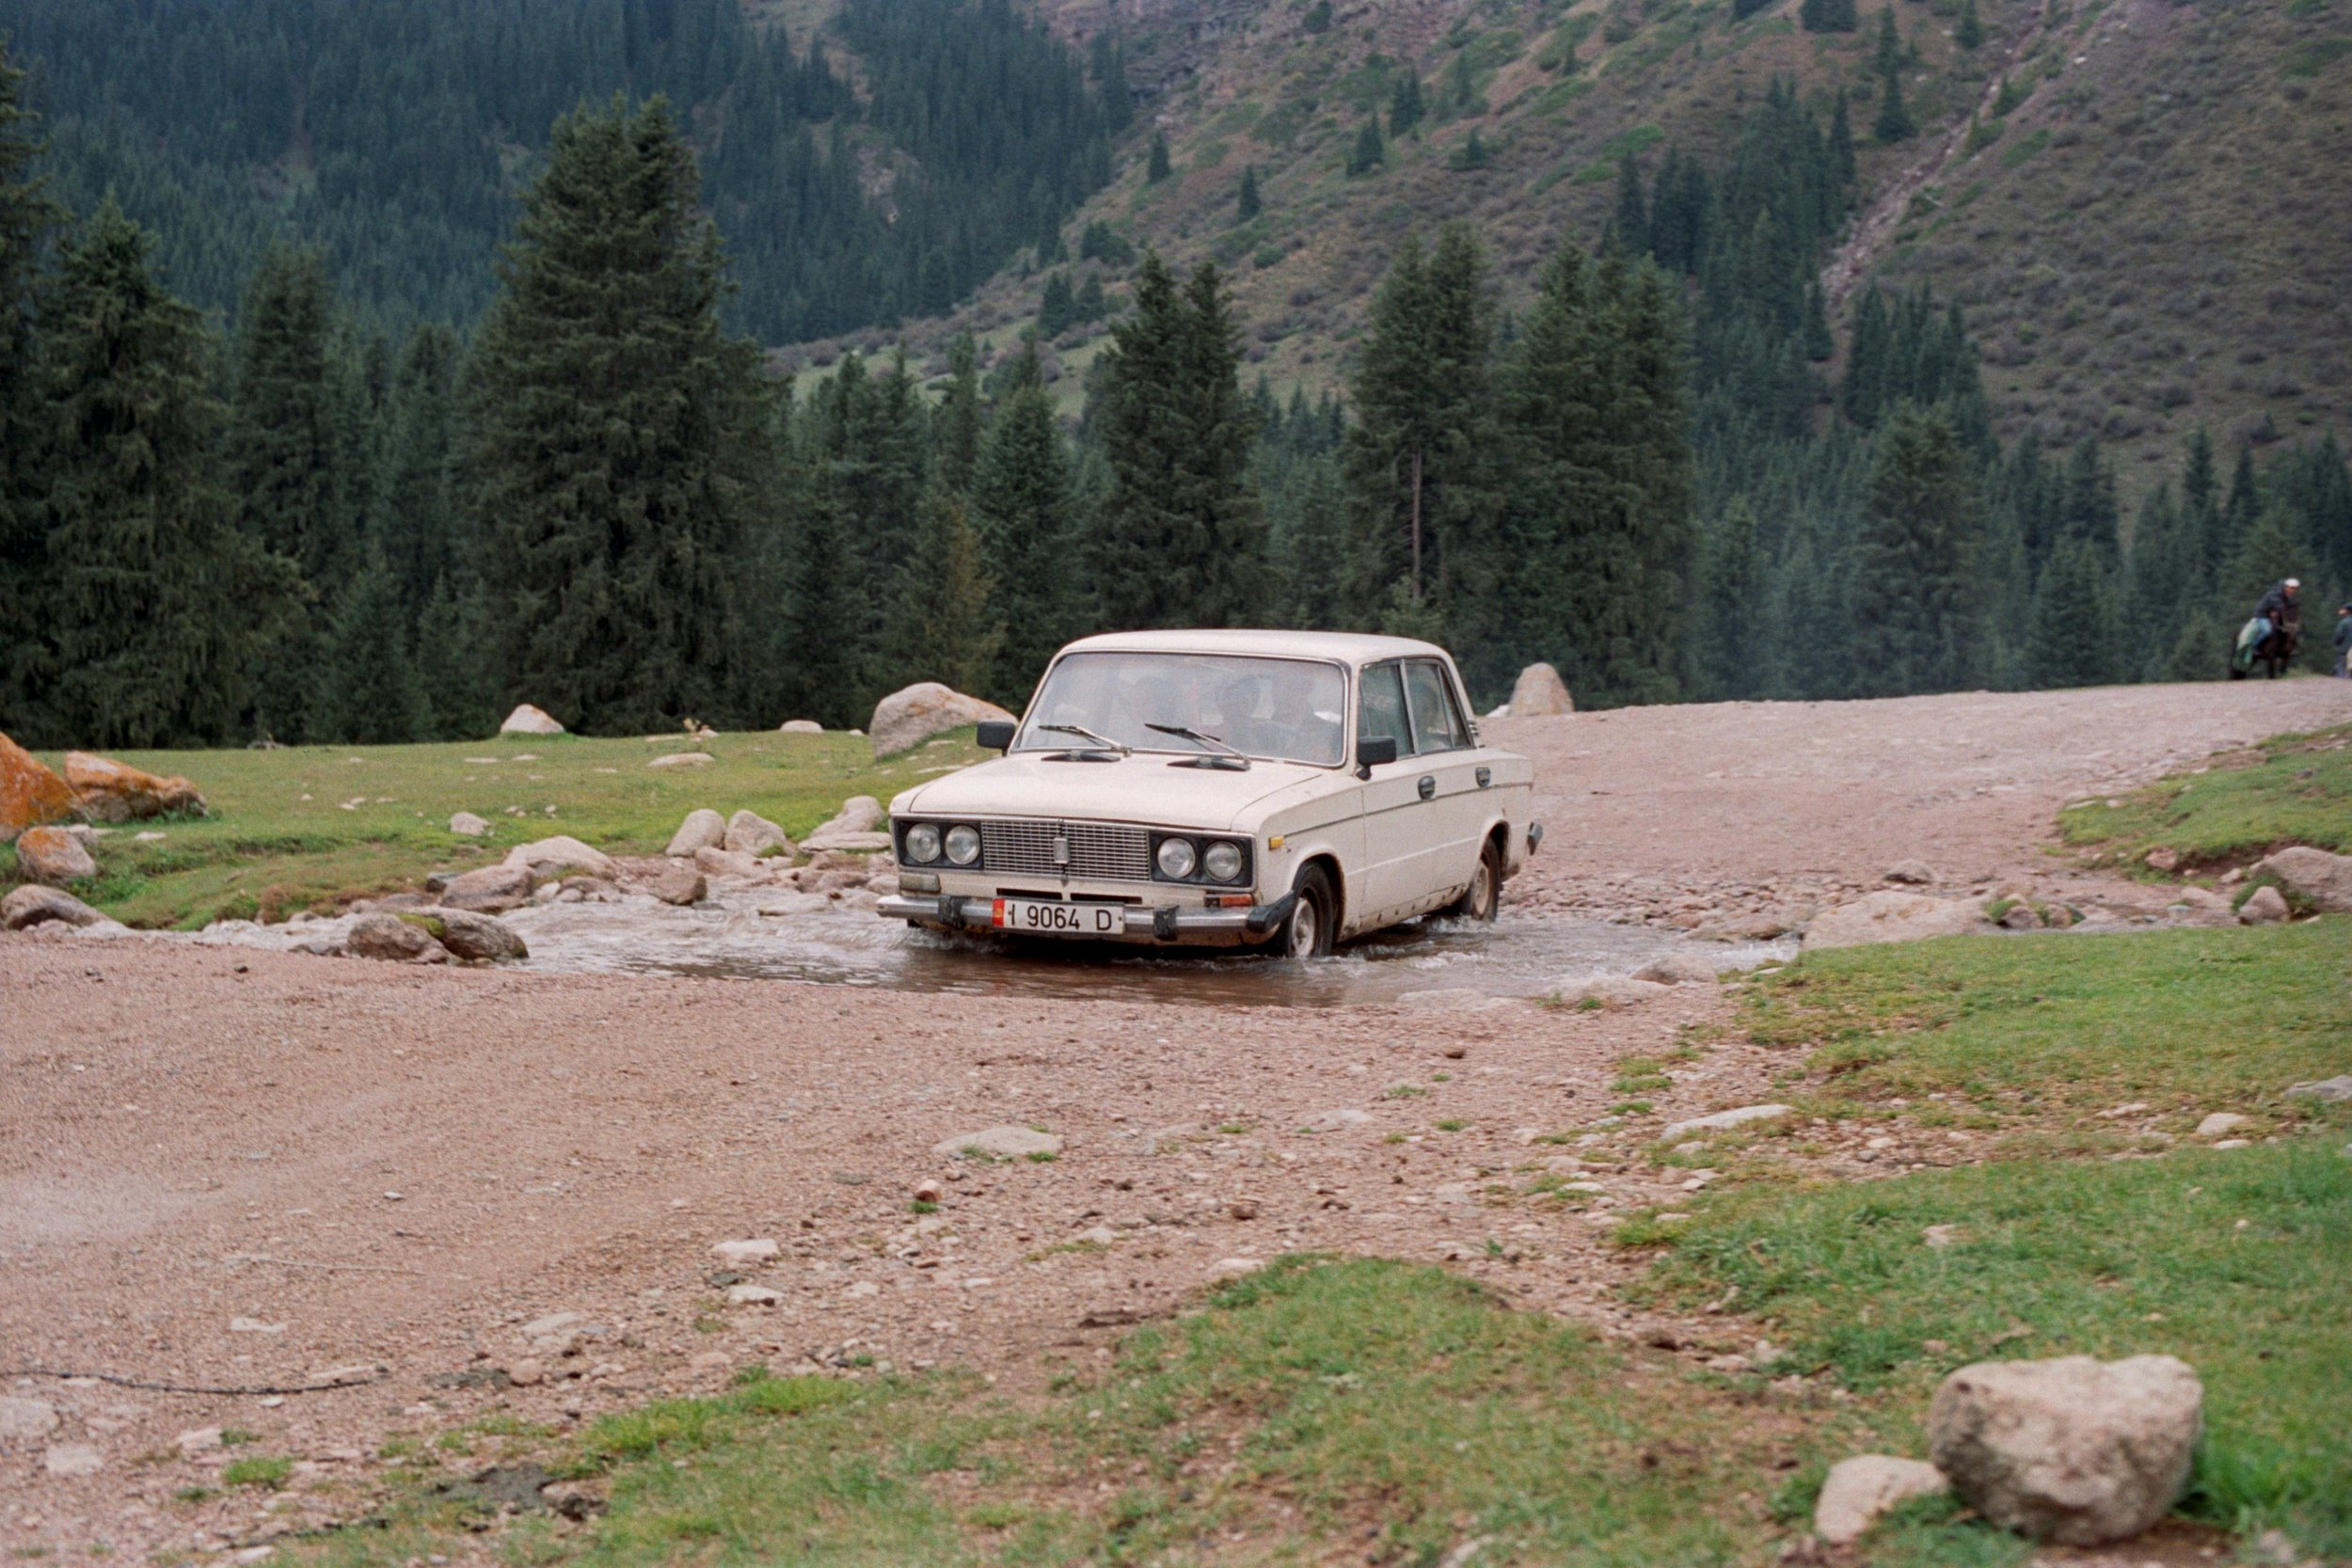 Lada. This model is inherited from the soviet era. It's the most common car in Kyrgyzstan.